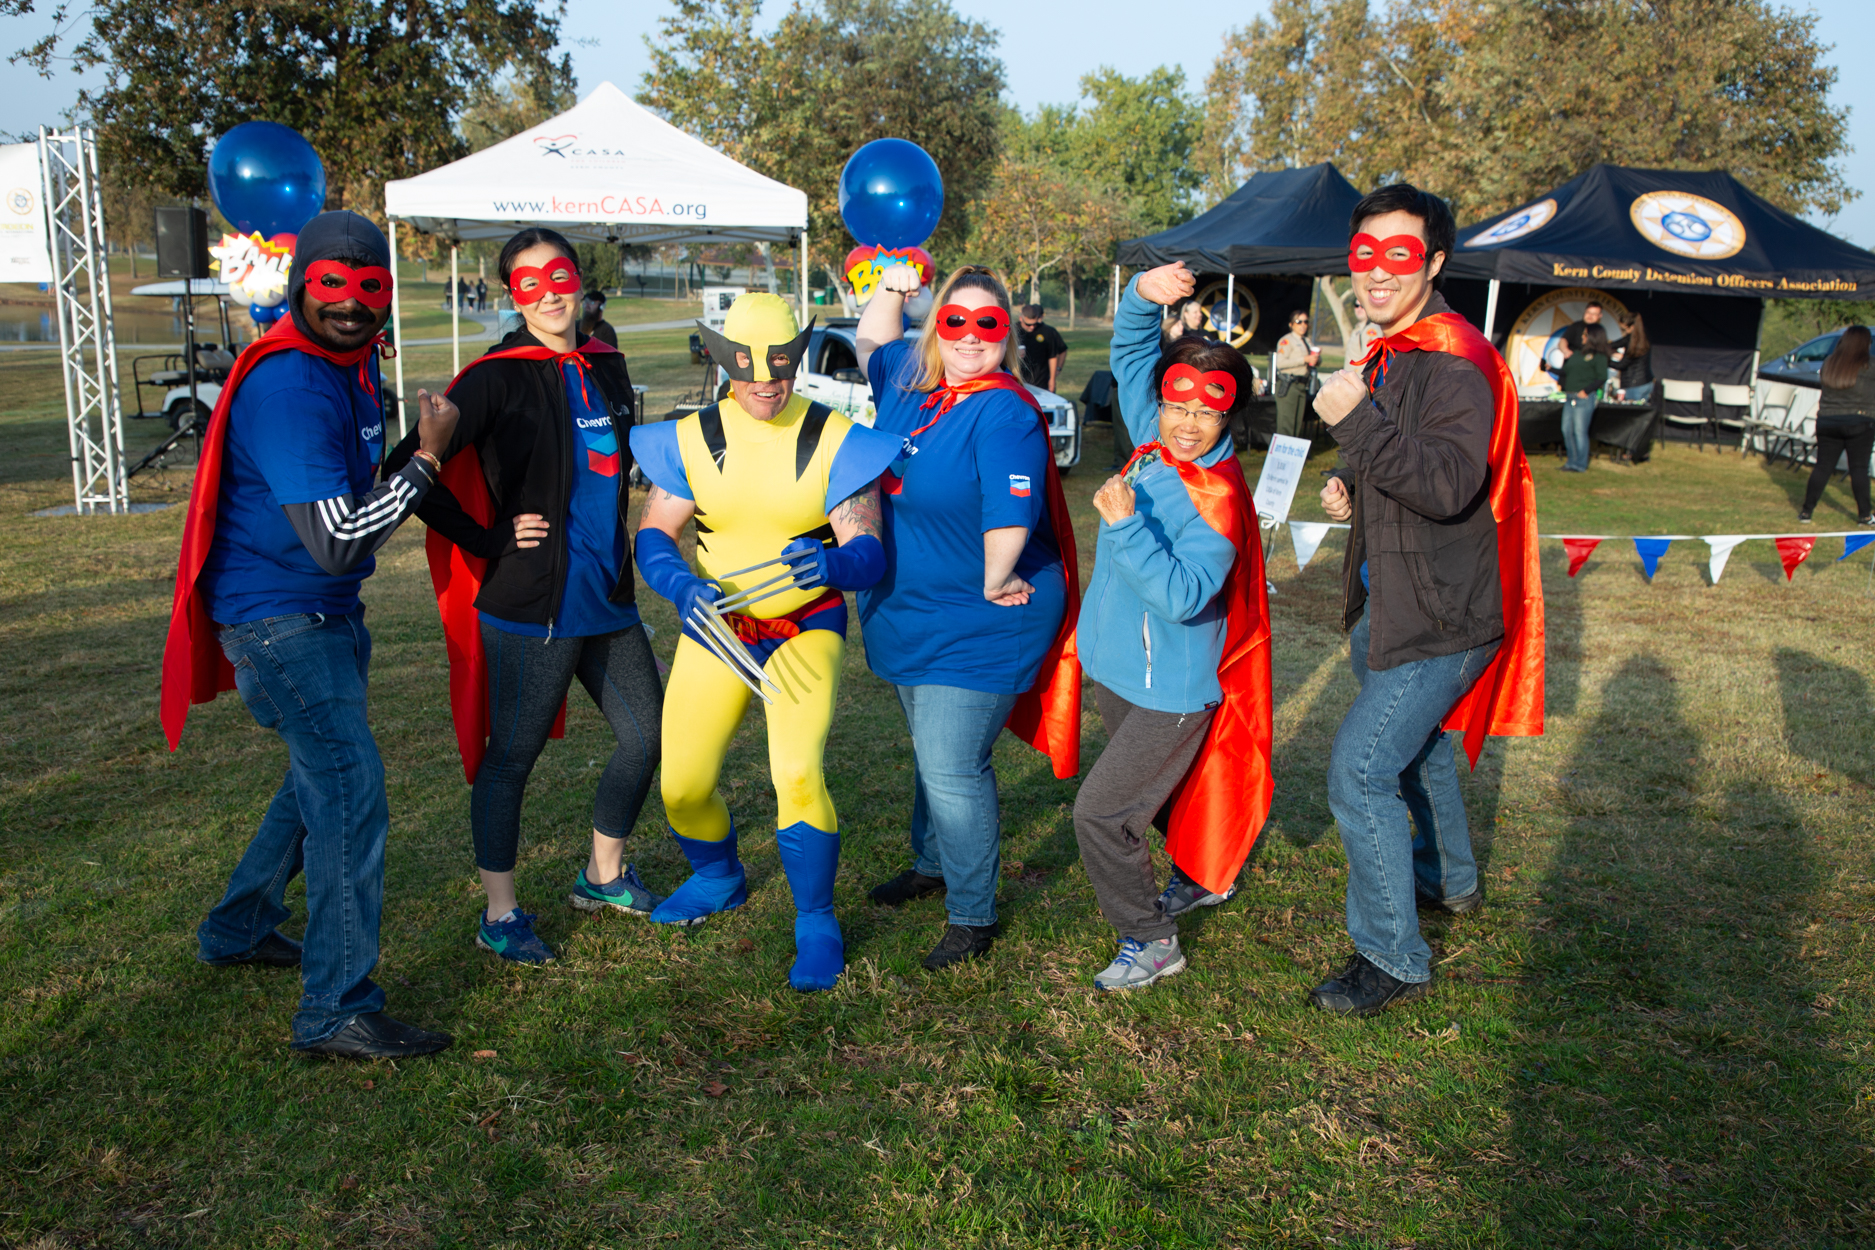 November Superhero Run